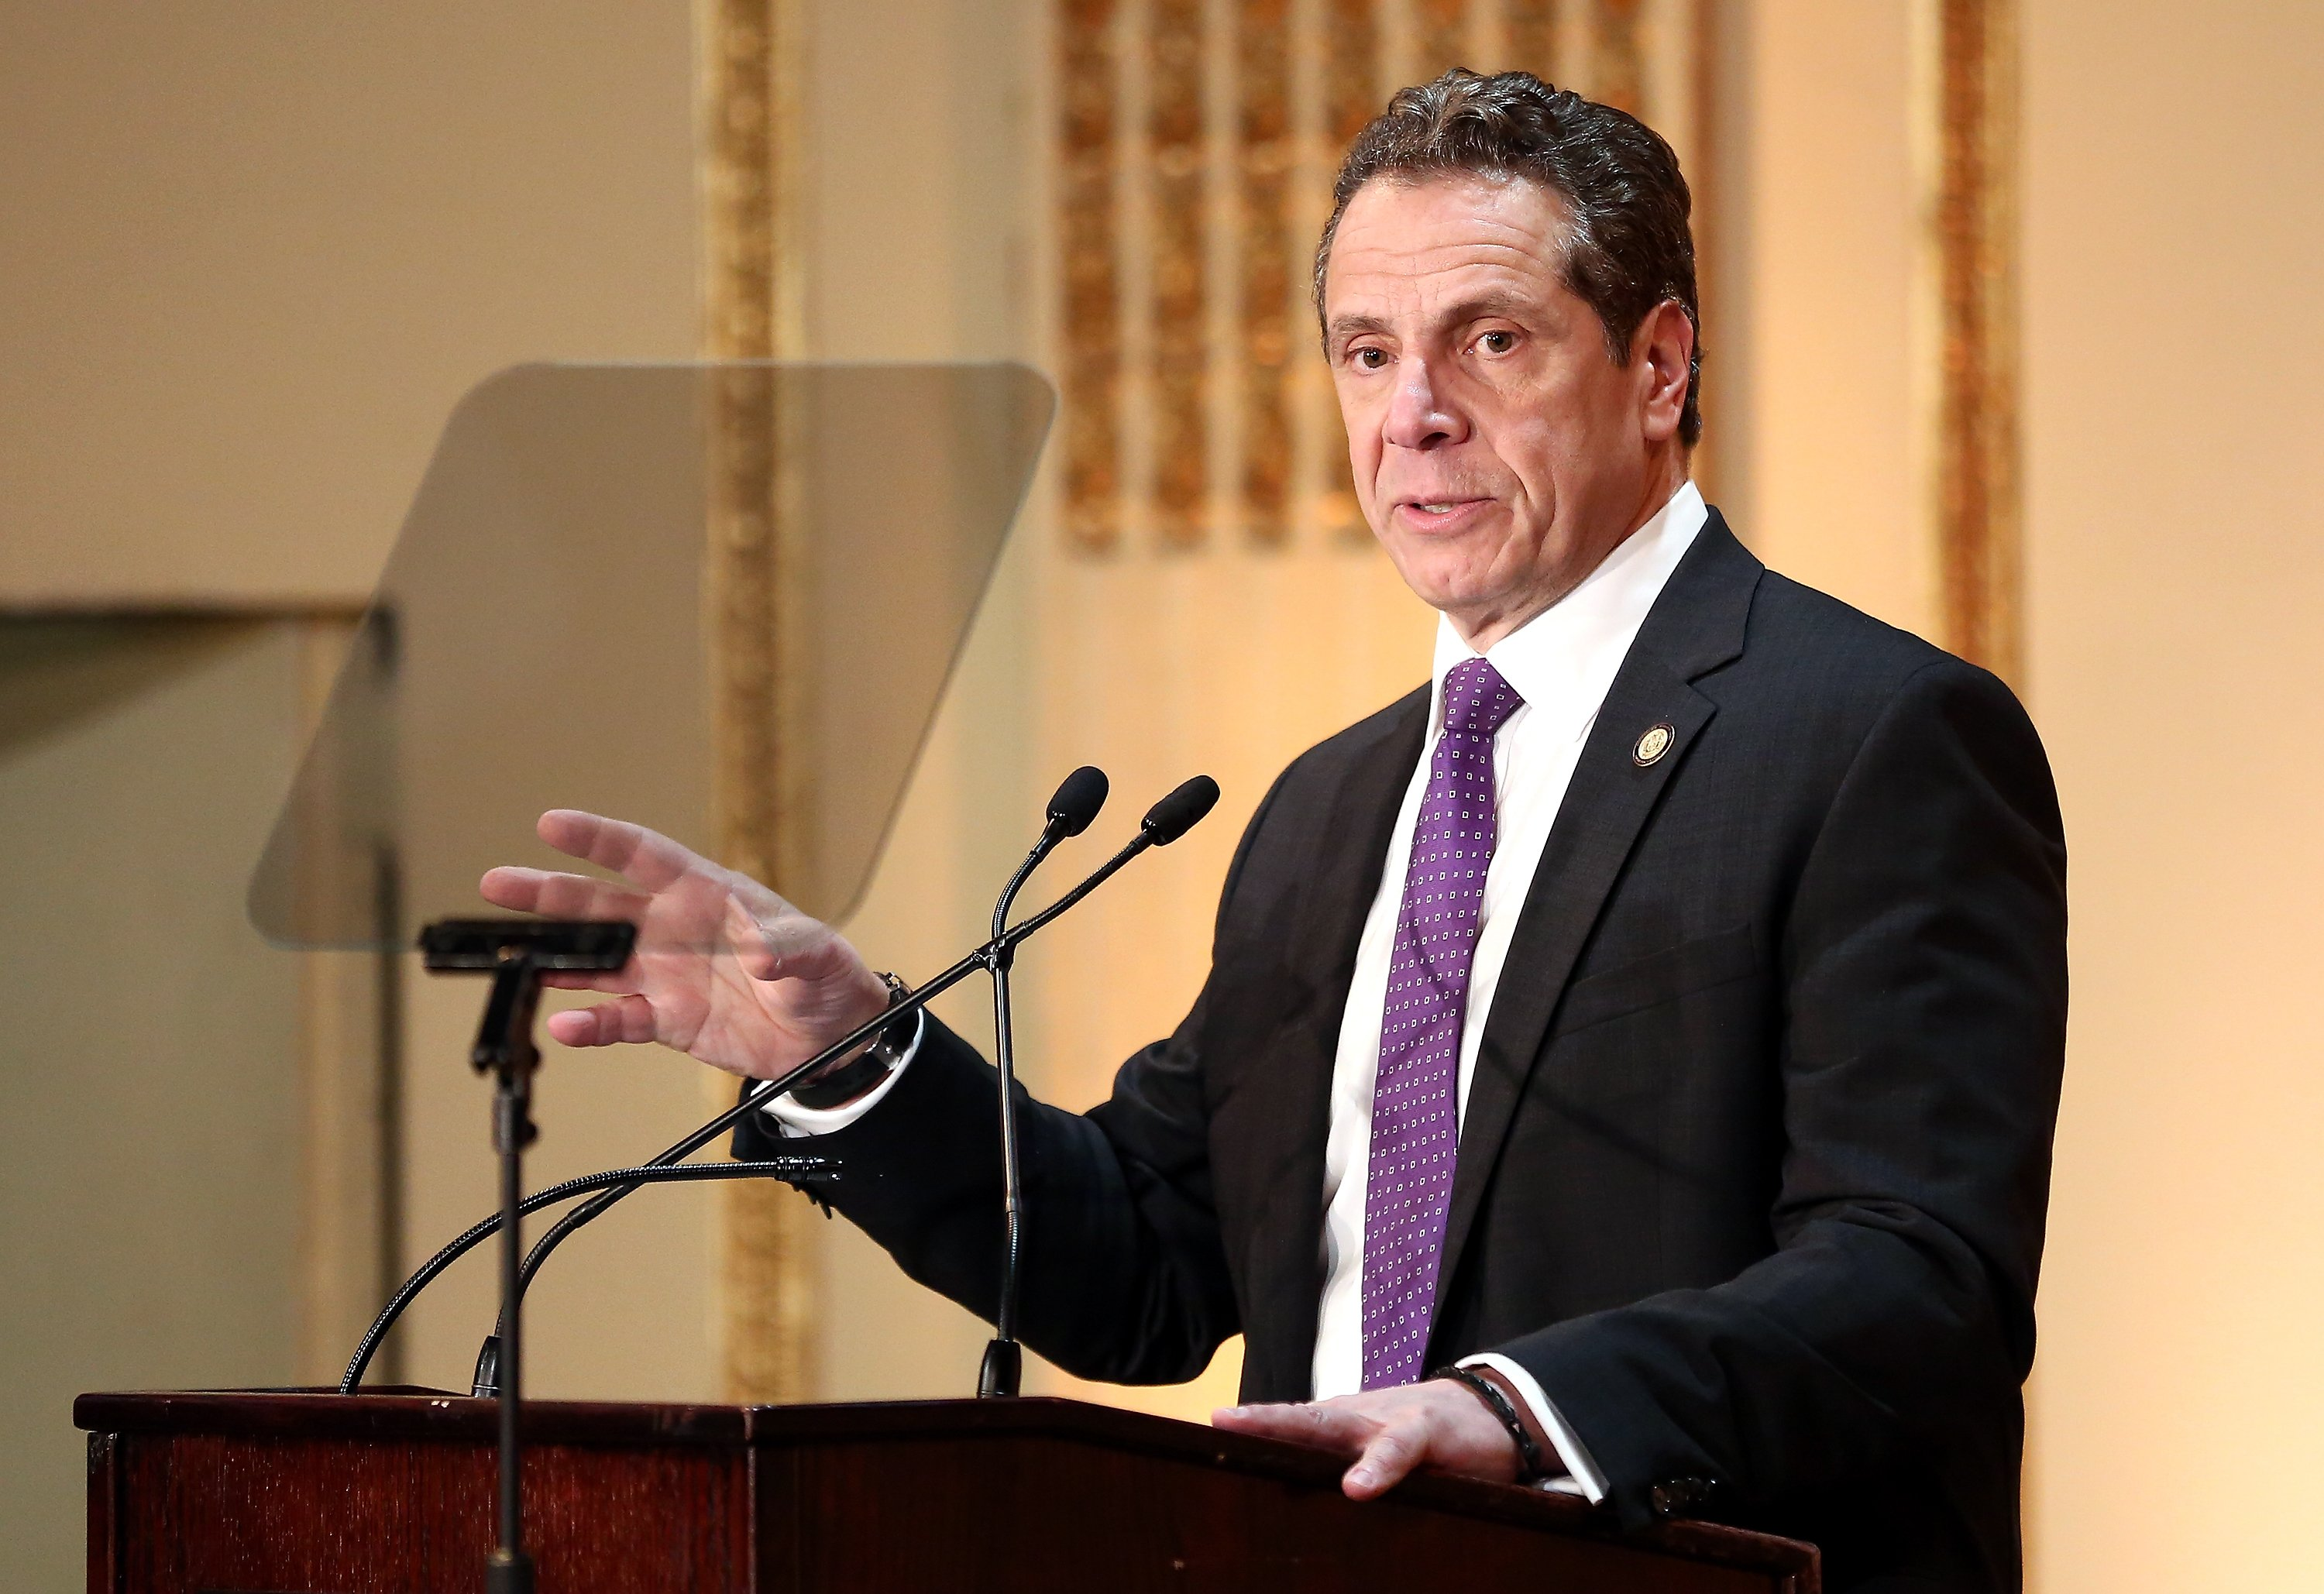 New York Governor Andrew Cuomo during his 2017 speaking engagement in a hotel in new York City. | Photo: Getty Images